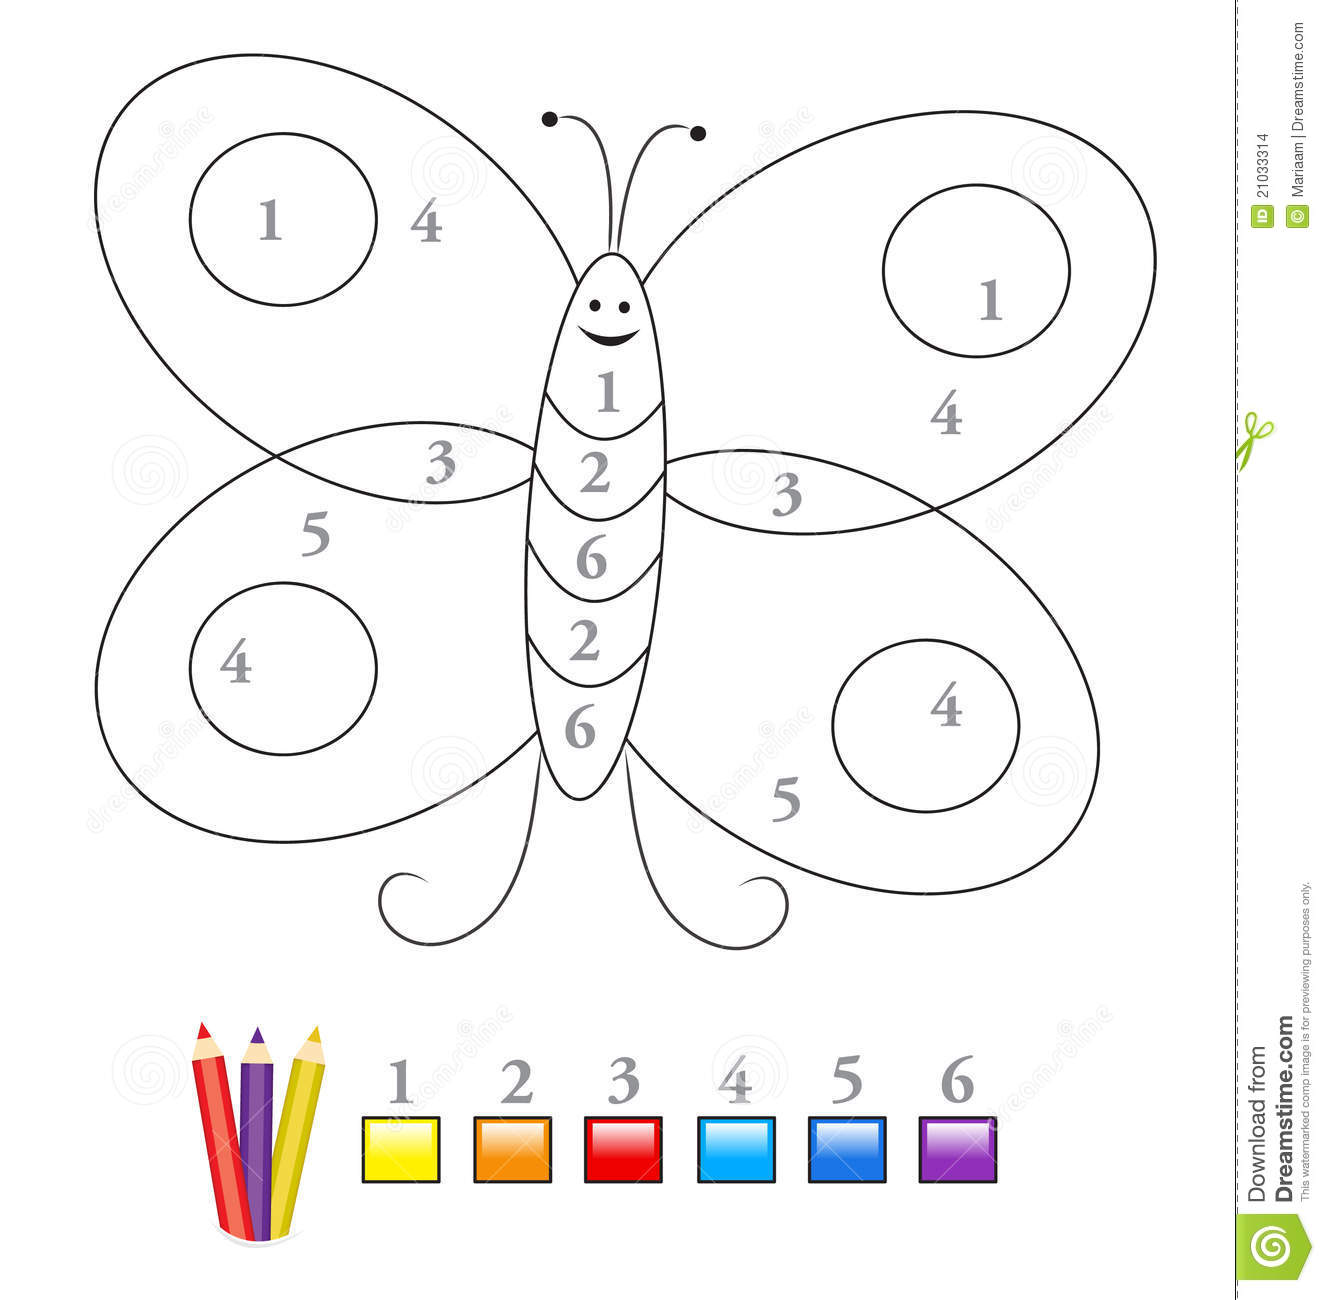 Color Por El Juego De Numero Mariposa Ilustracion Del Vector